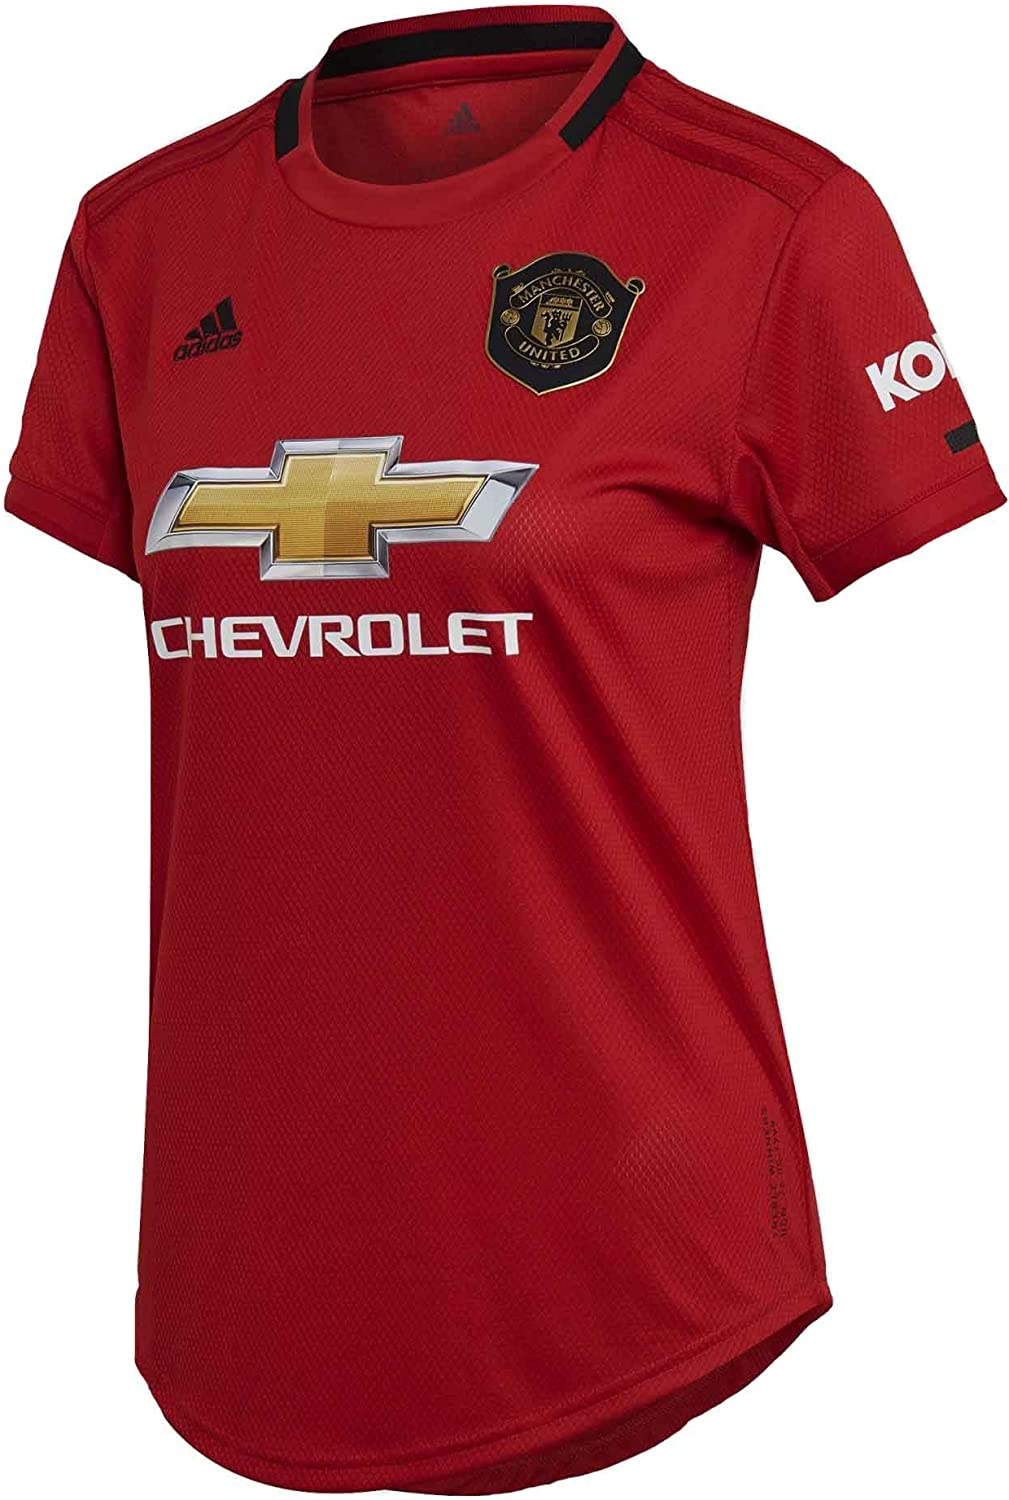 Amazon Com Adidas Women S Manchester United Home Jersey 2019 20 Clothing